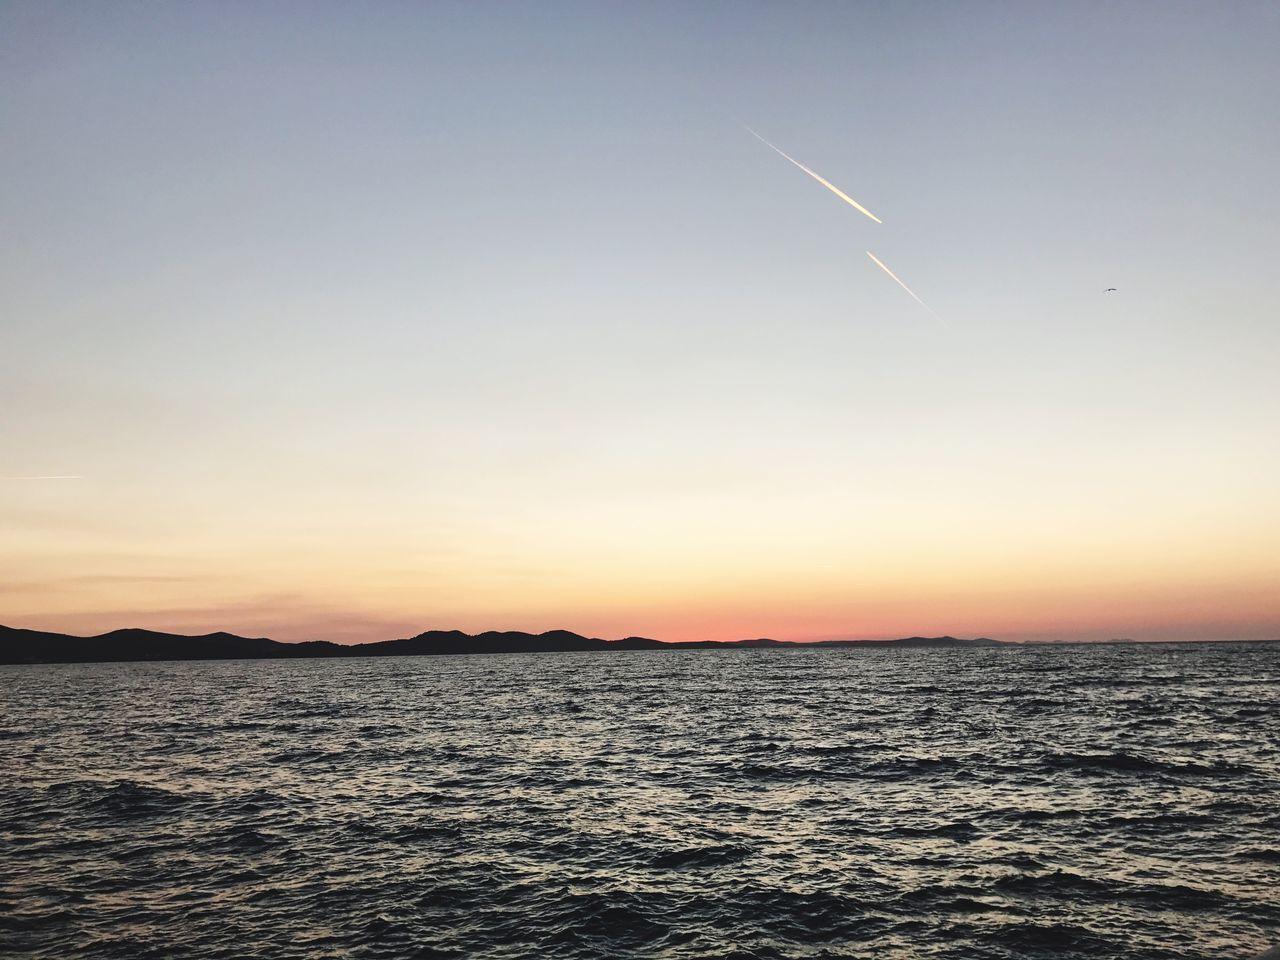 Sunset Beauty In Nature Scenics Nature Vapor Trail Sea Tranquil Scene Tranquility Sky No People Outdoors Waterfront Contrail Silhouette Water Clear Sky Horizon Over Water Day